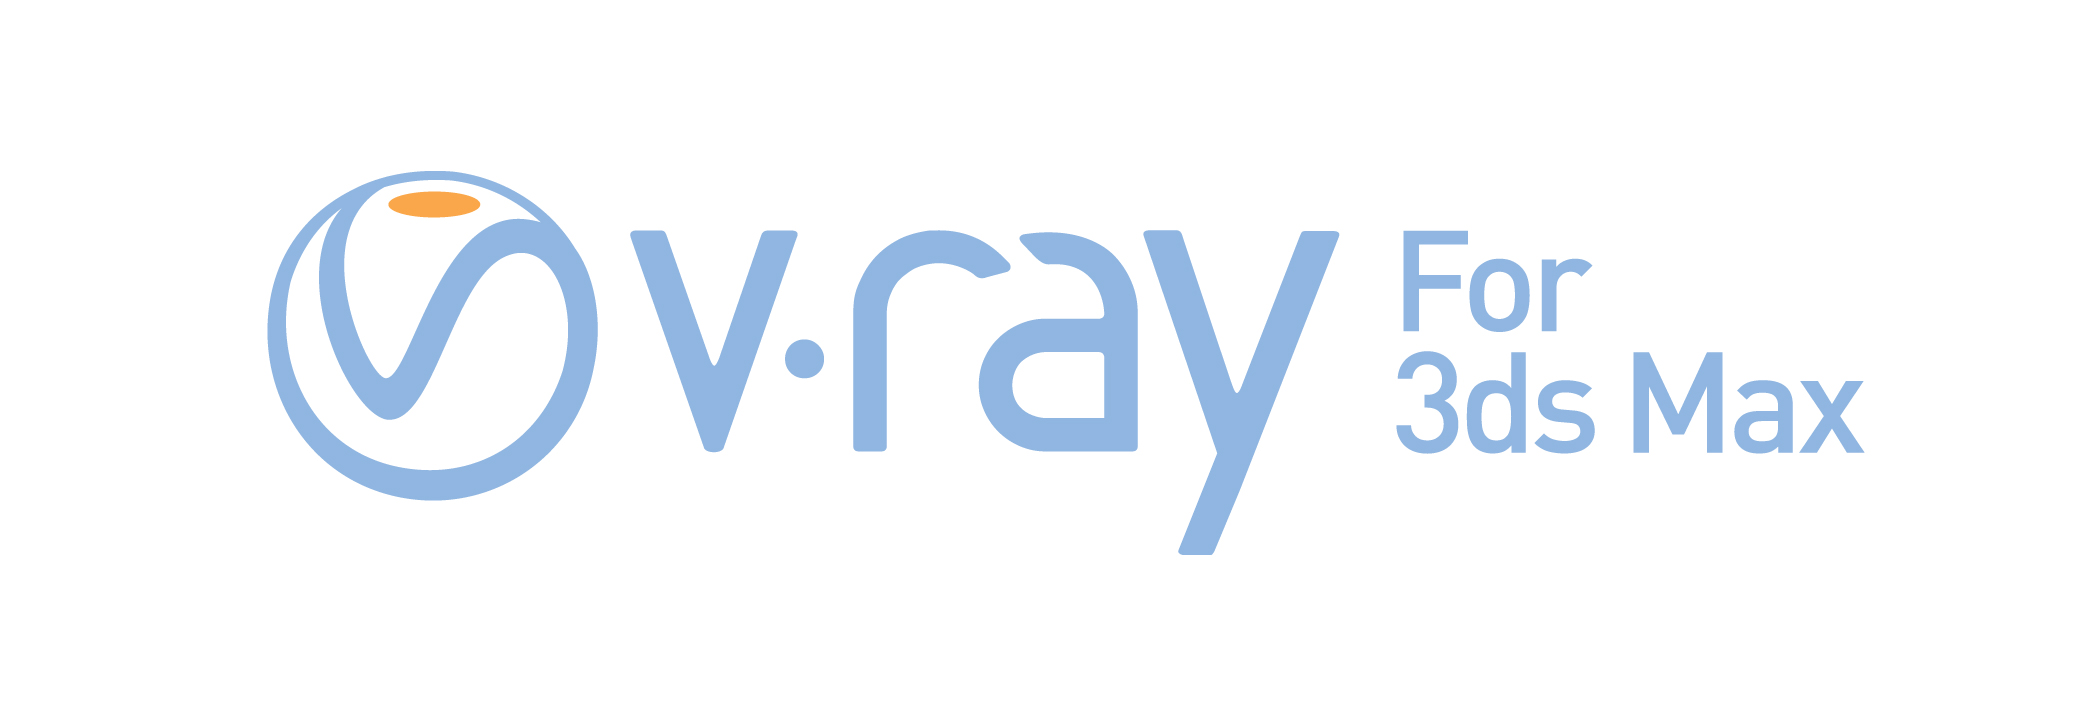 Vray 3Ds Max - Download Vray cho 3Ds Max Tổng hợp